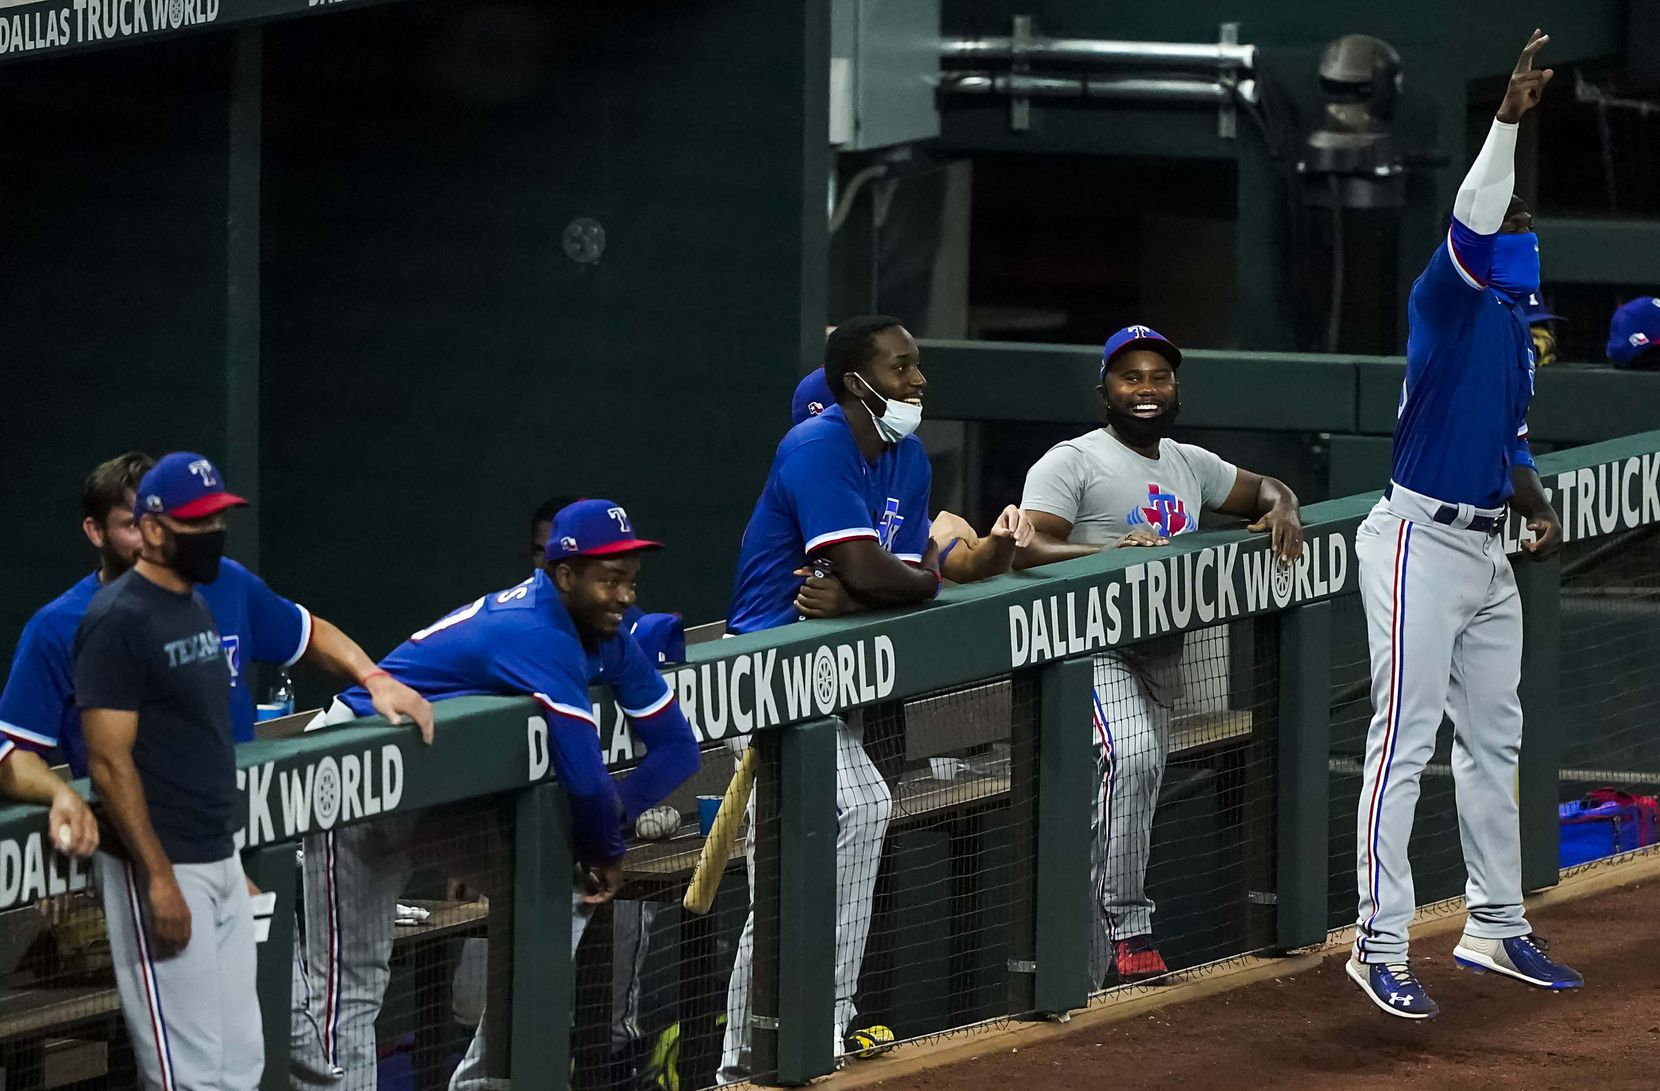 Adolis Garcia (far right) celebrates after Shin-Soo Choo drove in a run with a bunt single during a Texas Rangers Summer Camp intrasquad game at Globe Life Field on Saturday, July 18, 2020.